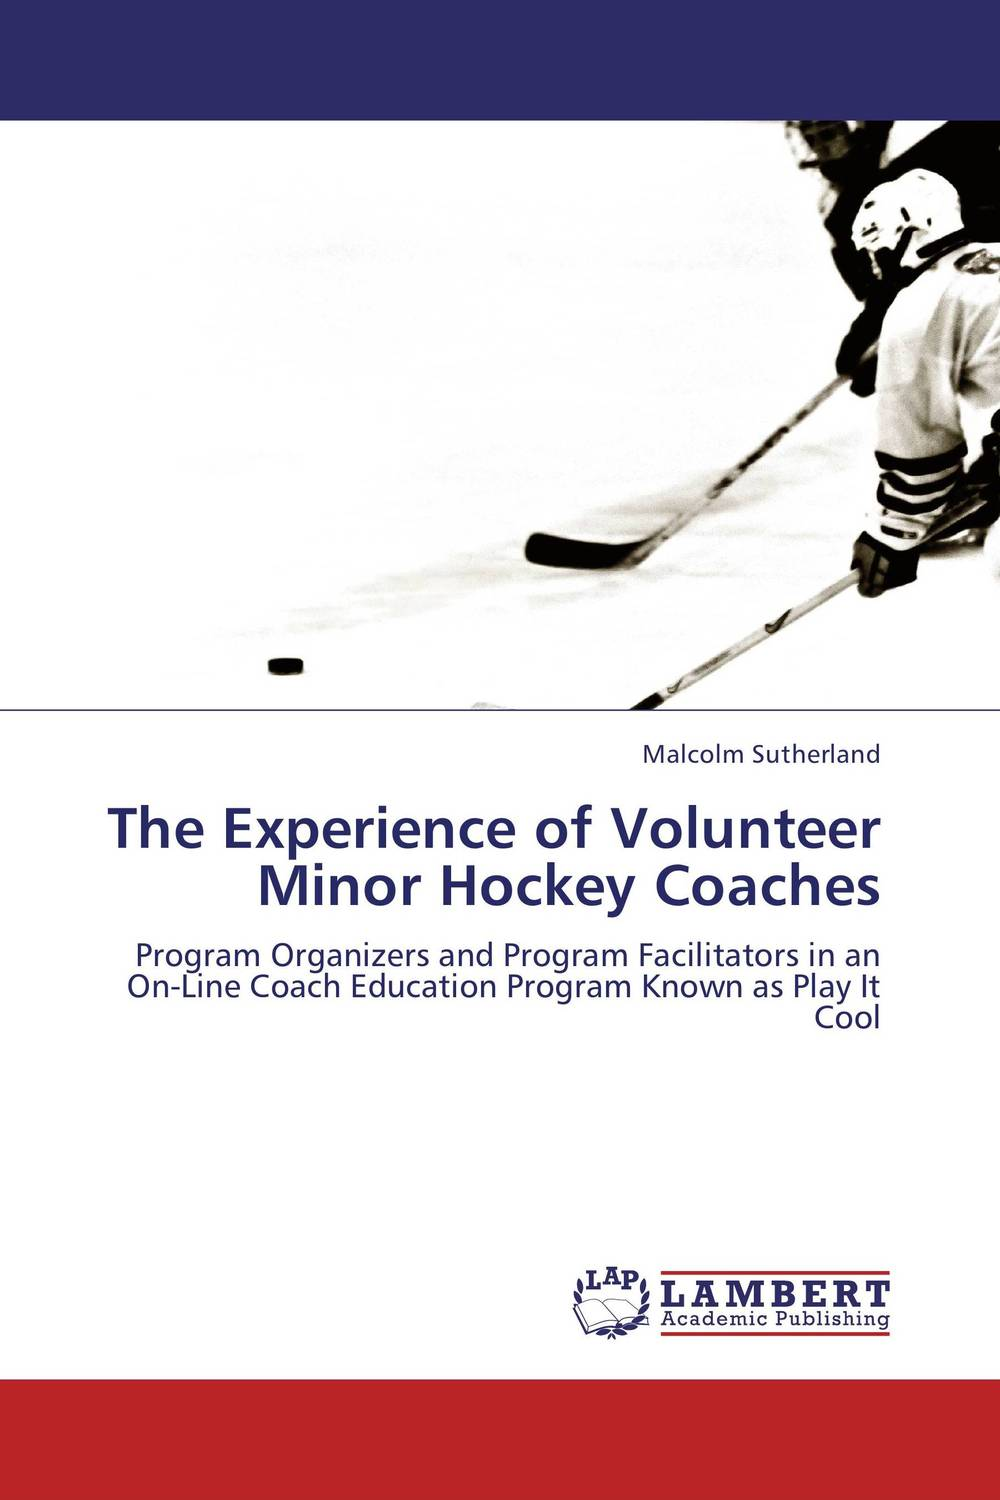 The Experience of Volunteer Minor Hockey Coaches